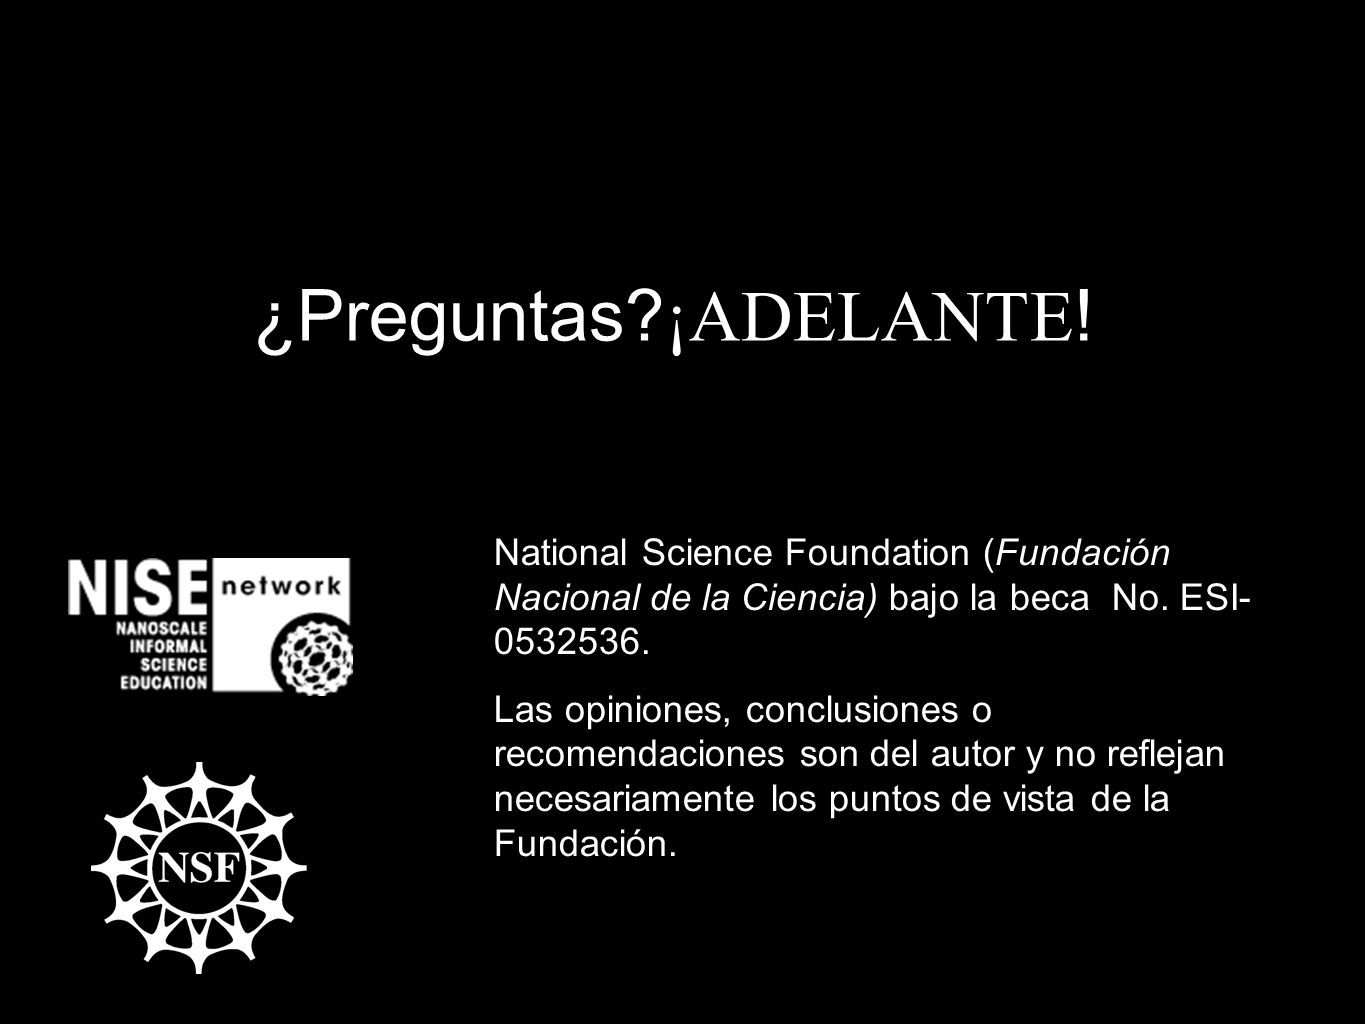 ¿Preguntas ¡ADELANTE! This project was supported by the National Science Foundation (Fundación Nacional de la Ciencia) bajo la beca No. ESI-0532536.